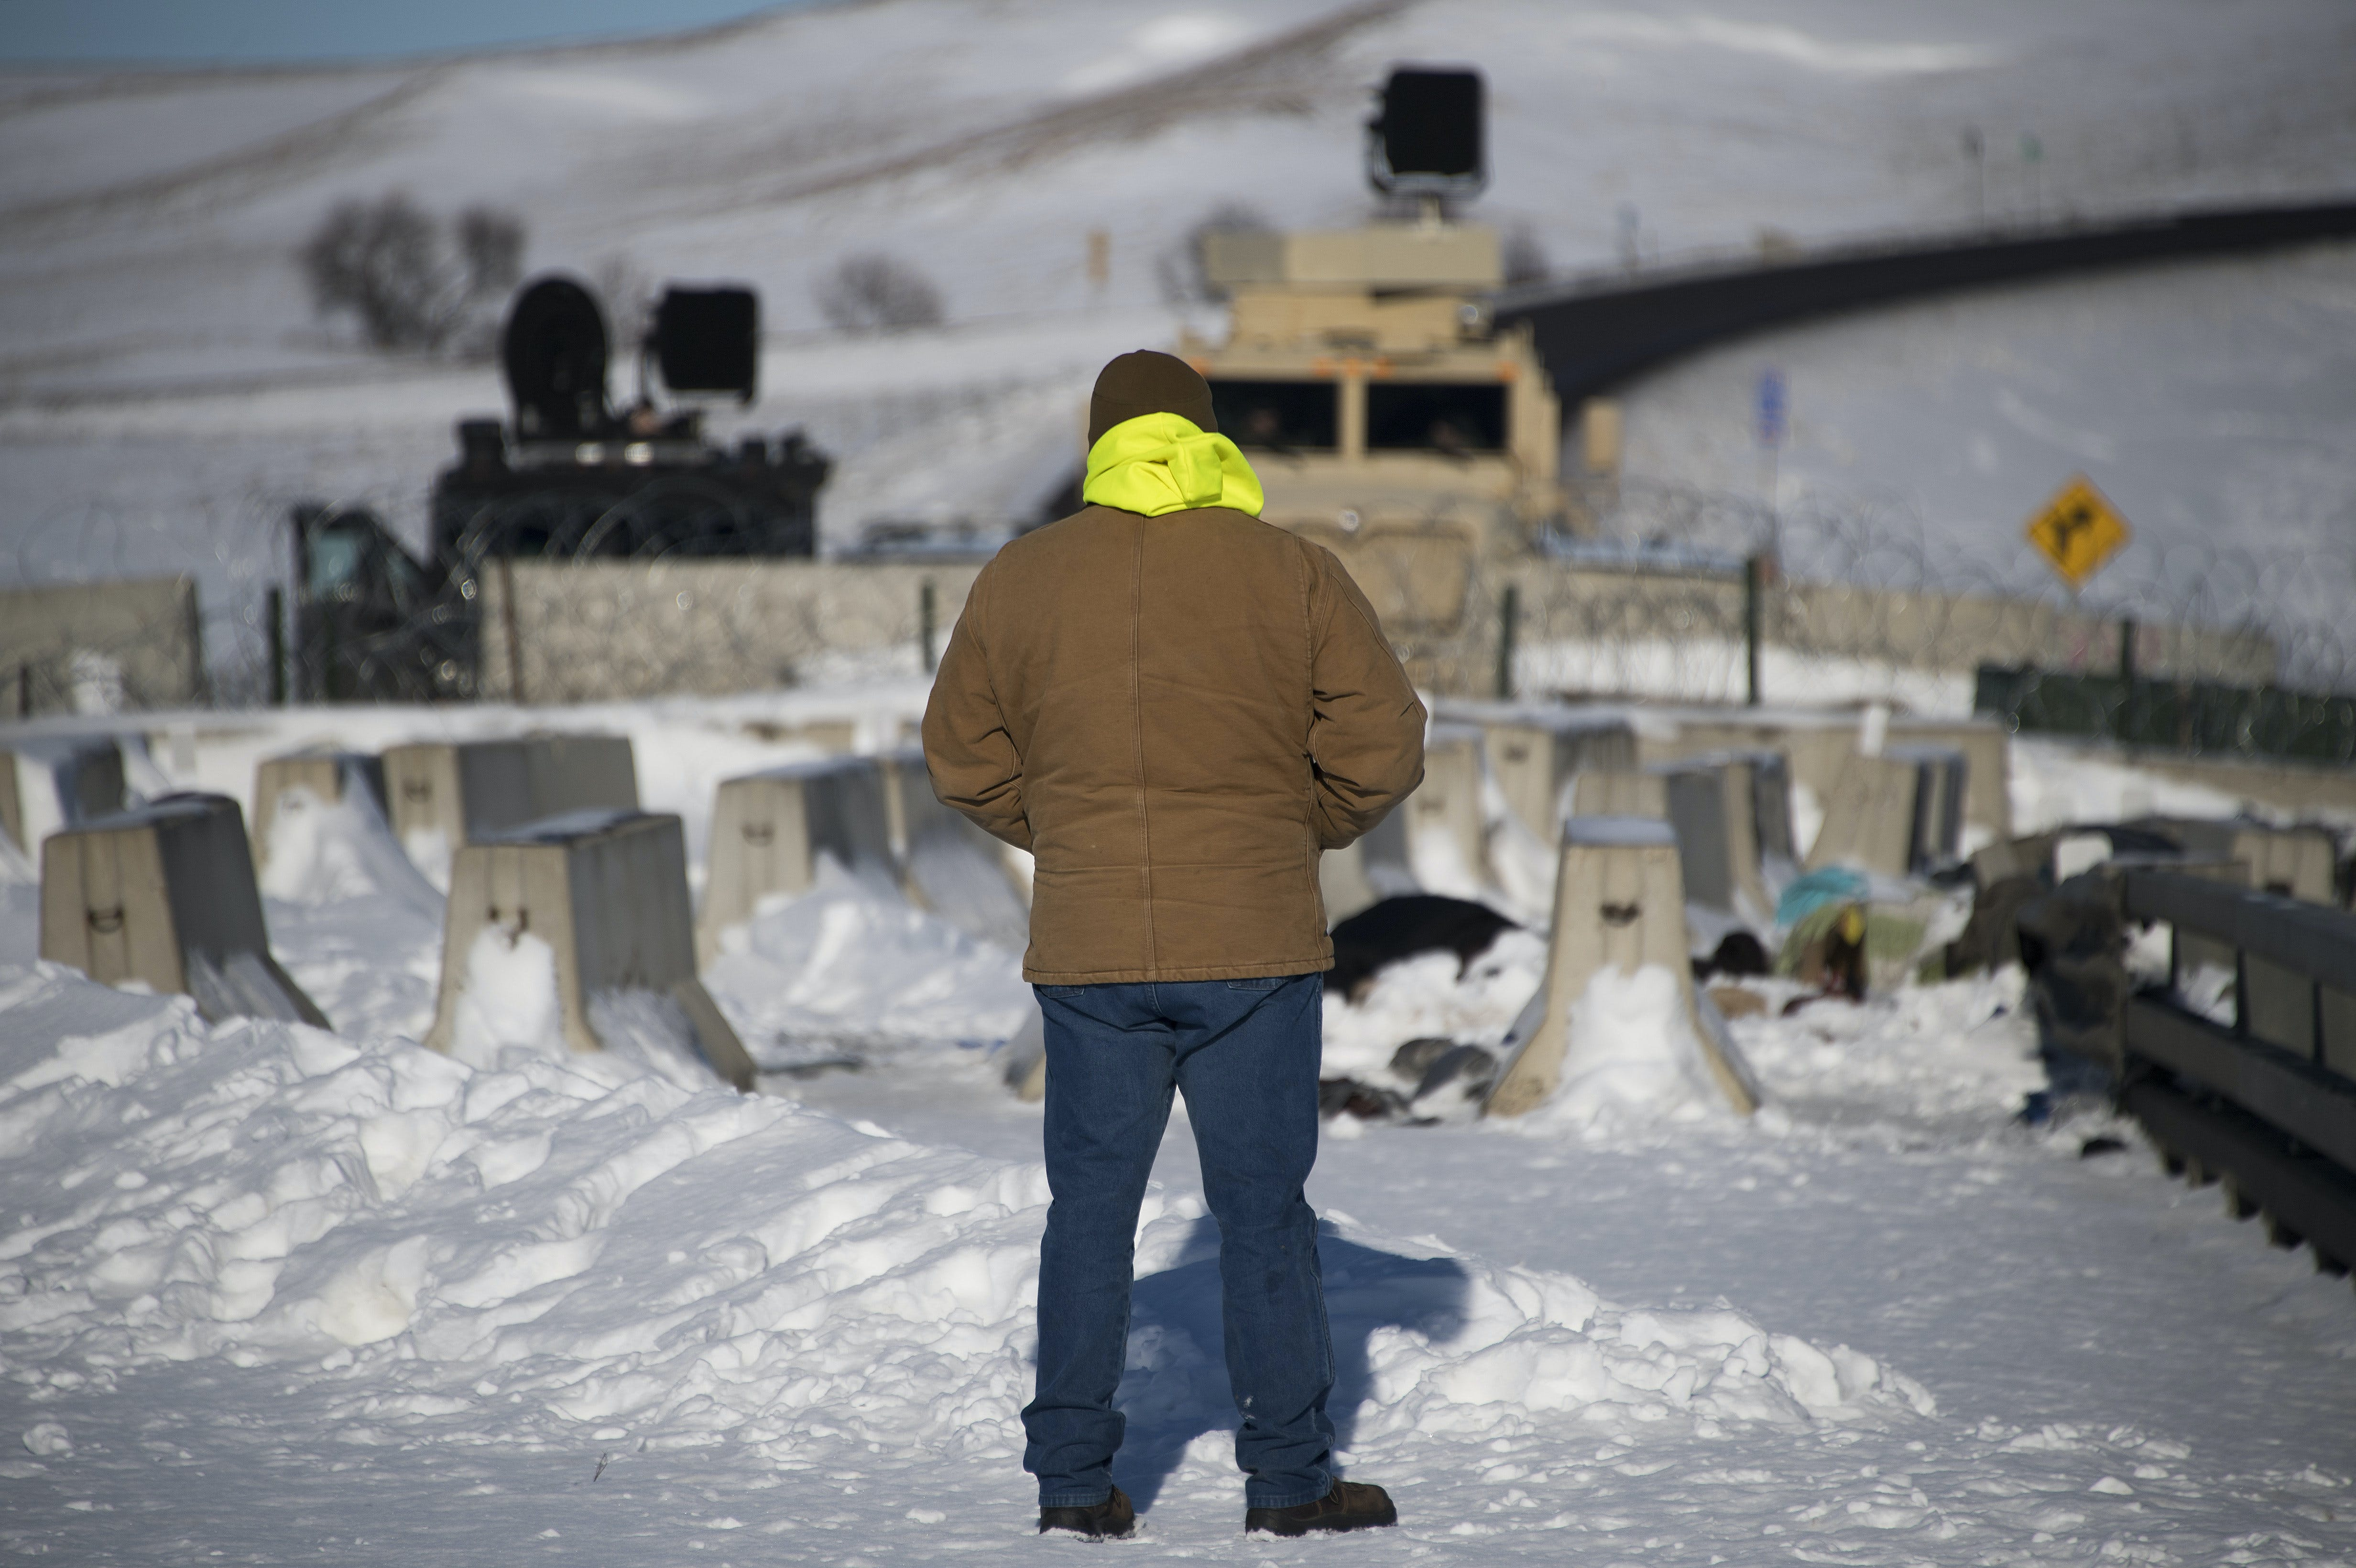 An activist stands alone in silent protest by a police barricade on a bridge near Oceti Sakowin Camp on the edge of the Standing Rock Sioux Reservation on December 4, 2016 outside Cannon Ball, North Dakota.Native Americans and activists from around the country gather at the camp trying to halt the construction of the Dakota Access Pipeline. / AFP / JIM WATSON (Photo credit should read JIM WATSON/AFP/Getty Images)